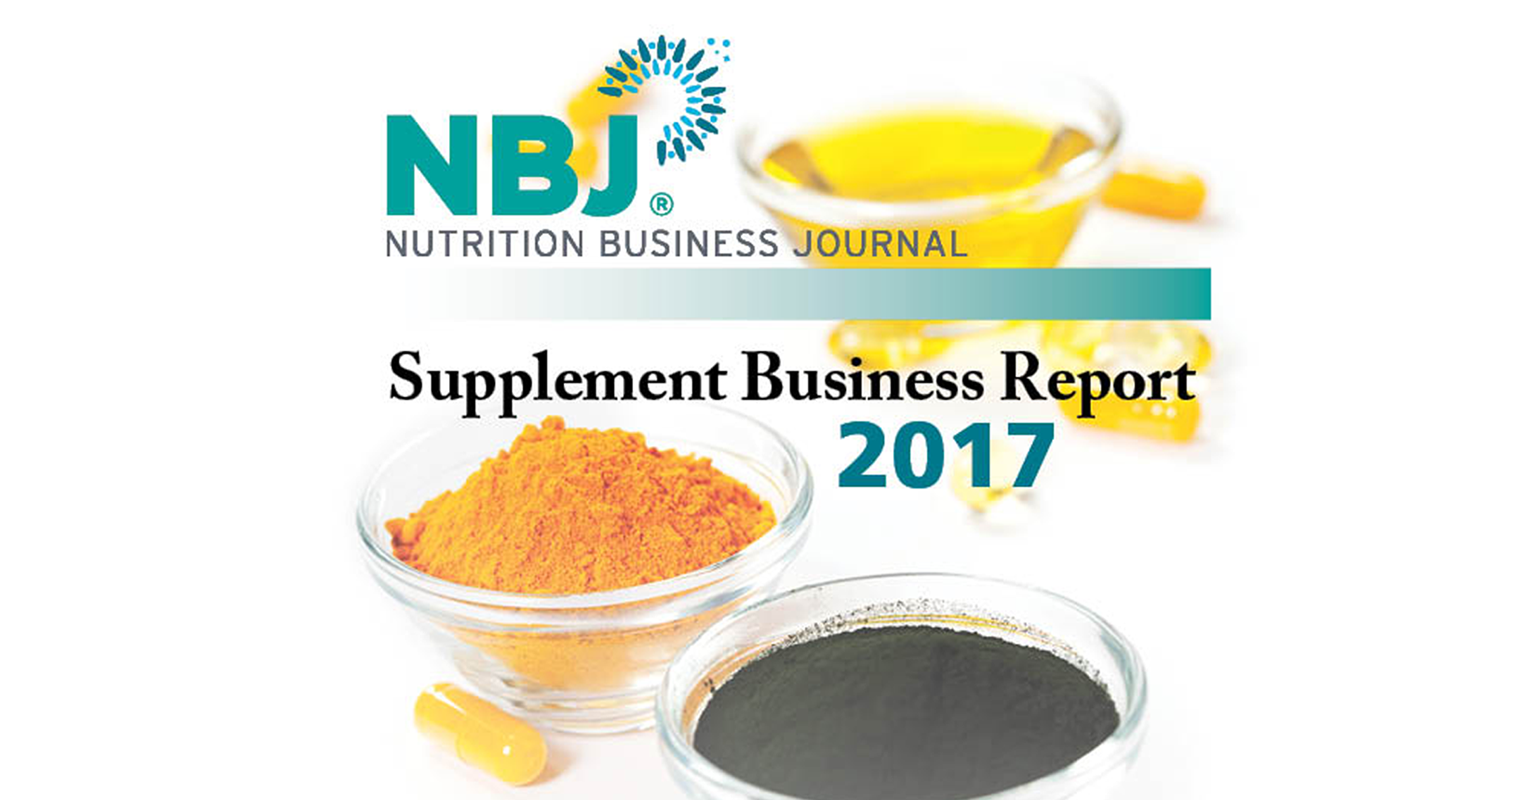 NBJ Supplement Business Report 2015